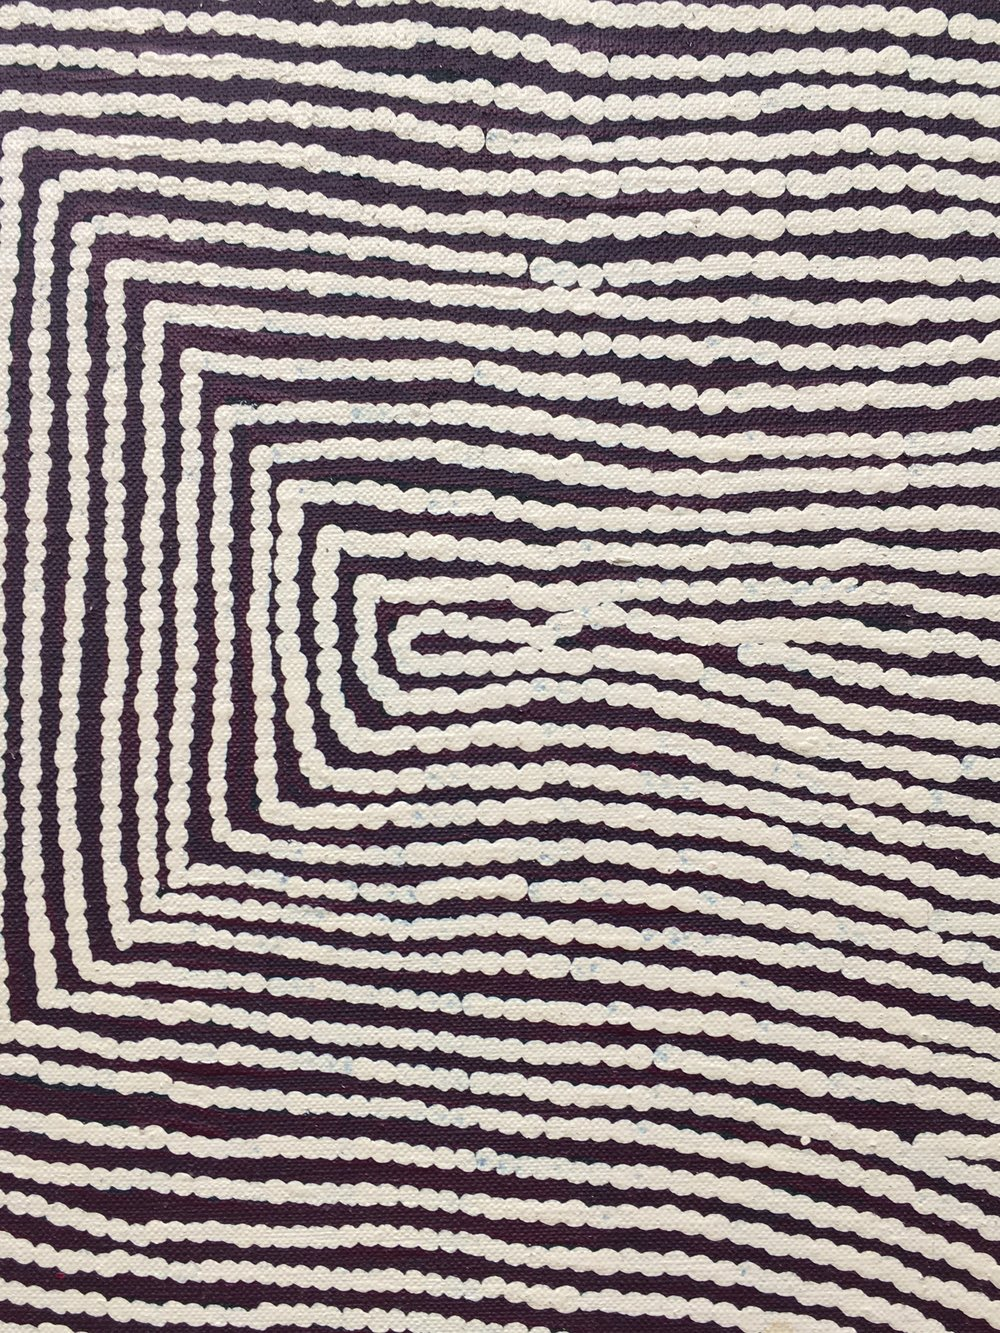 Warlimpirrnga Tjapaltjarri, Untitled, 2015, Acrylic on linen, 244 x 183 cm, Salon 94